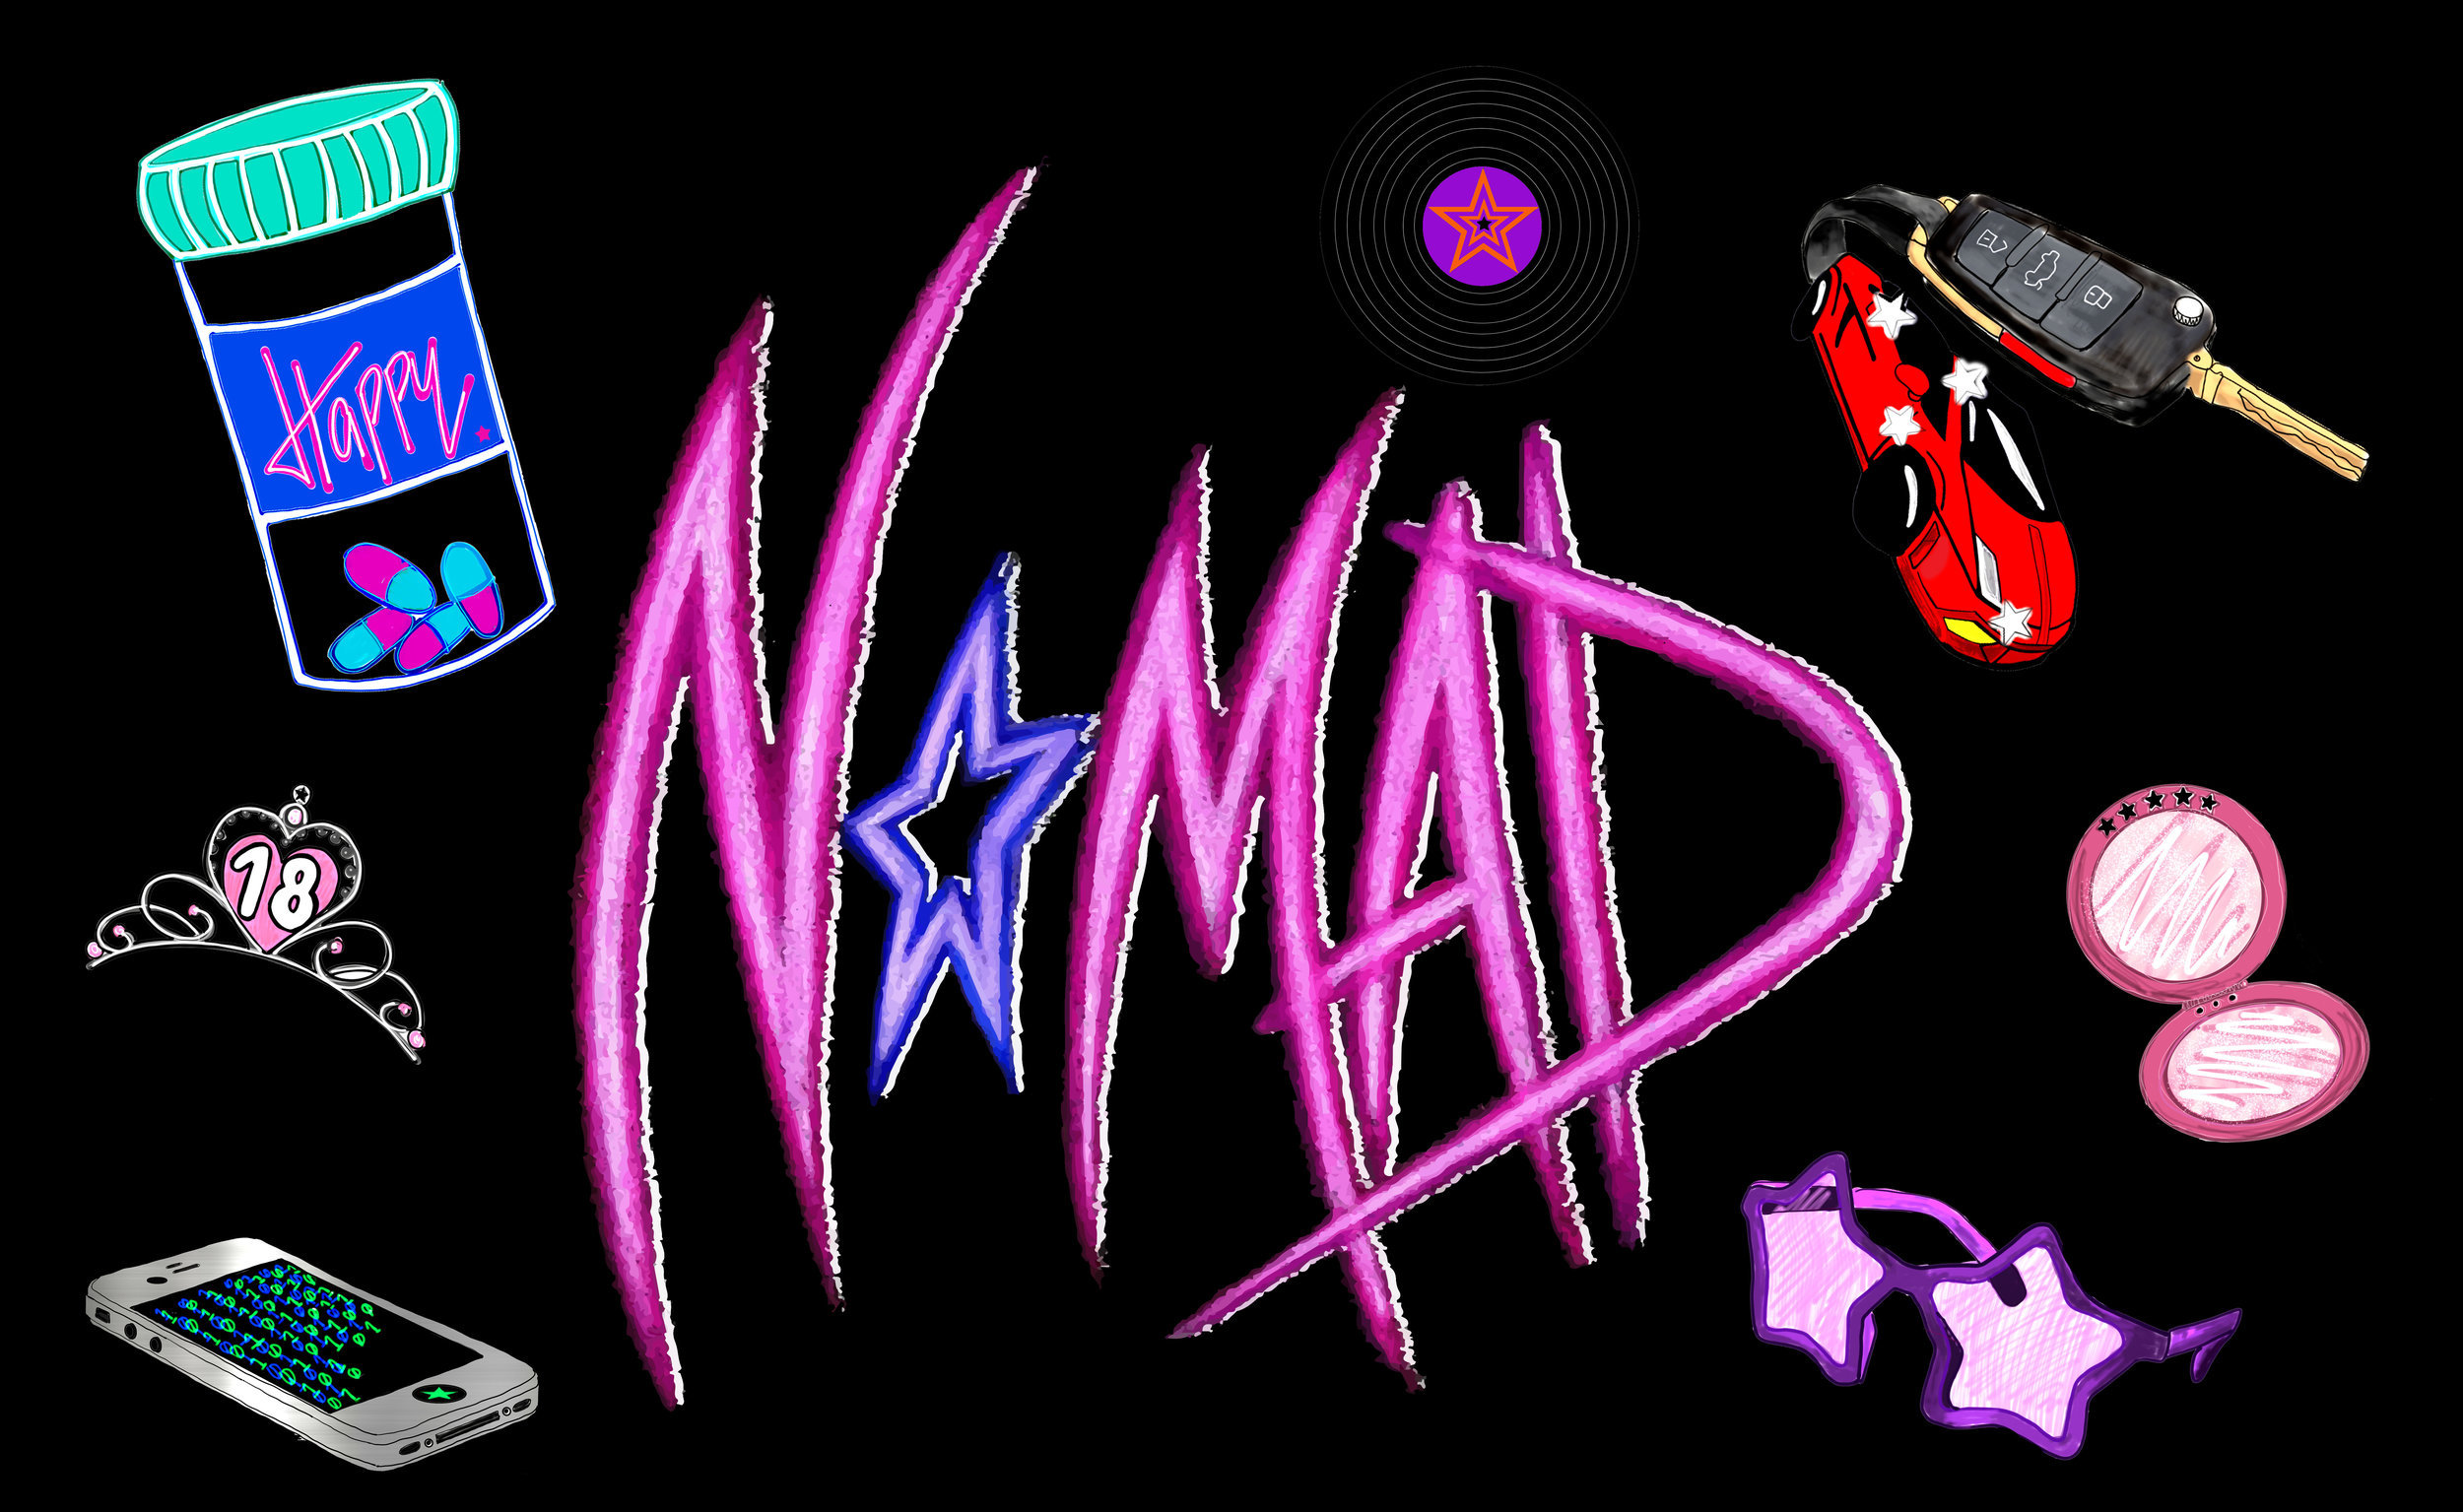 'Nomad' album art and logo by Julia Ysabela Fernandez